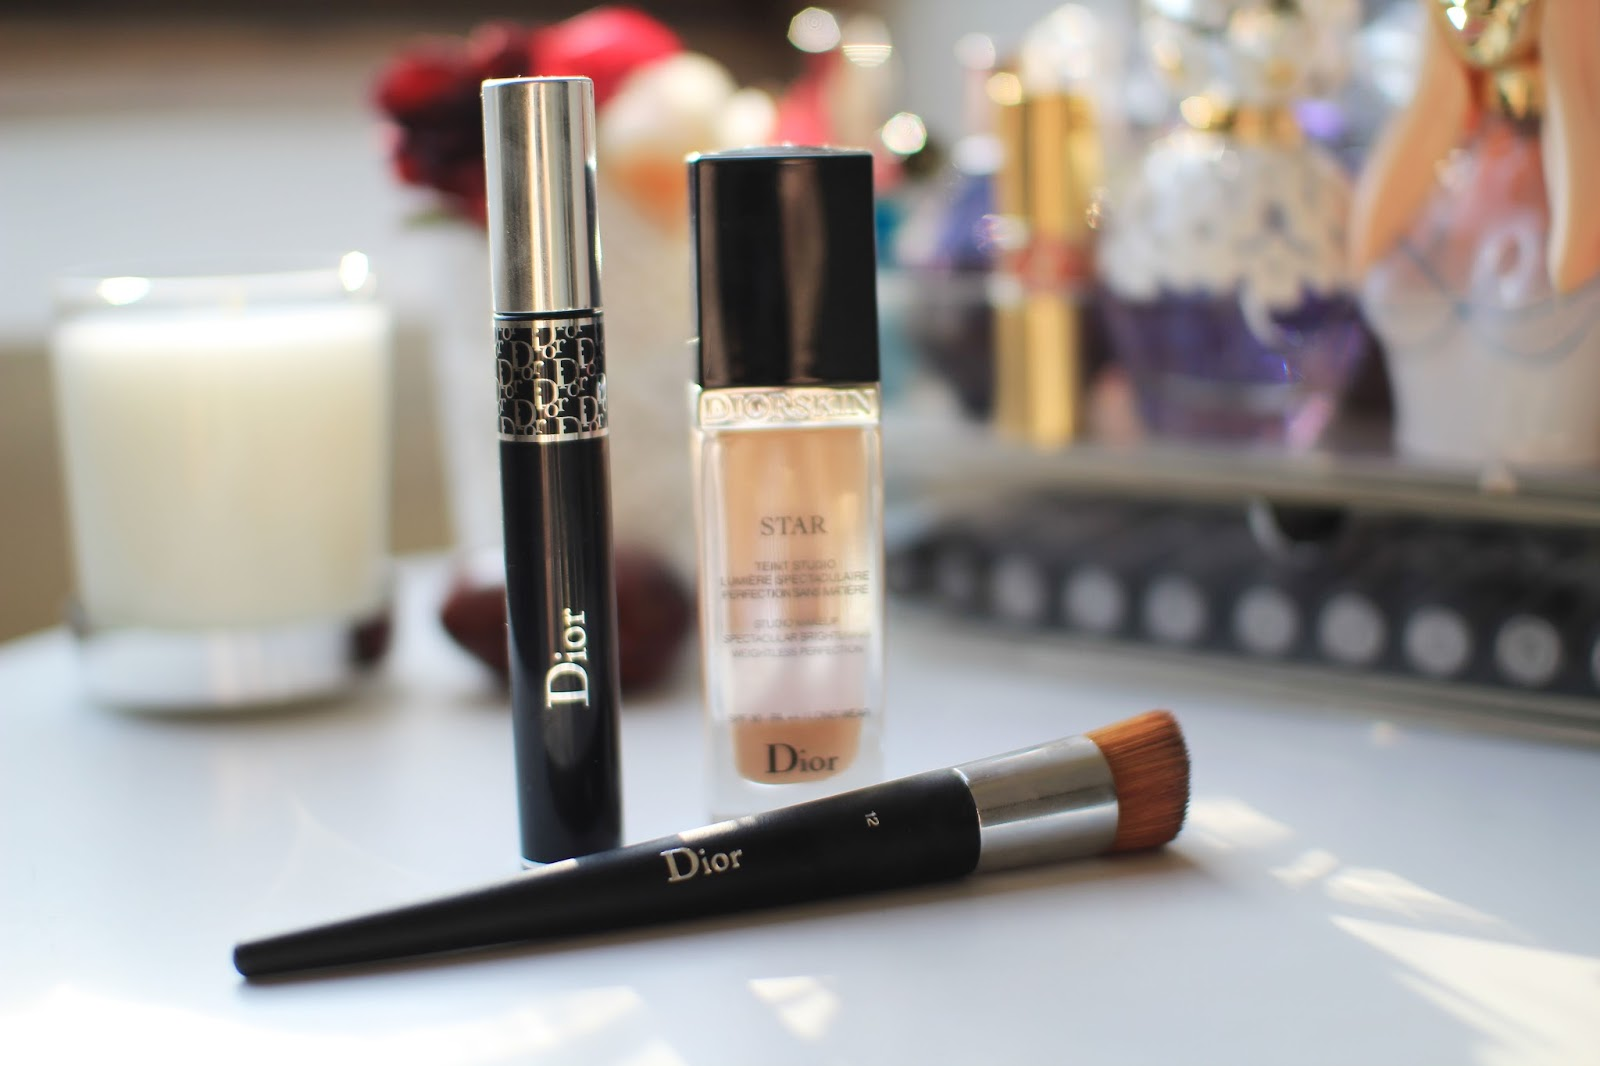 The Diorskin Star Foundation and Diorshow Mascara